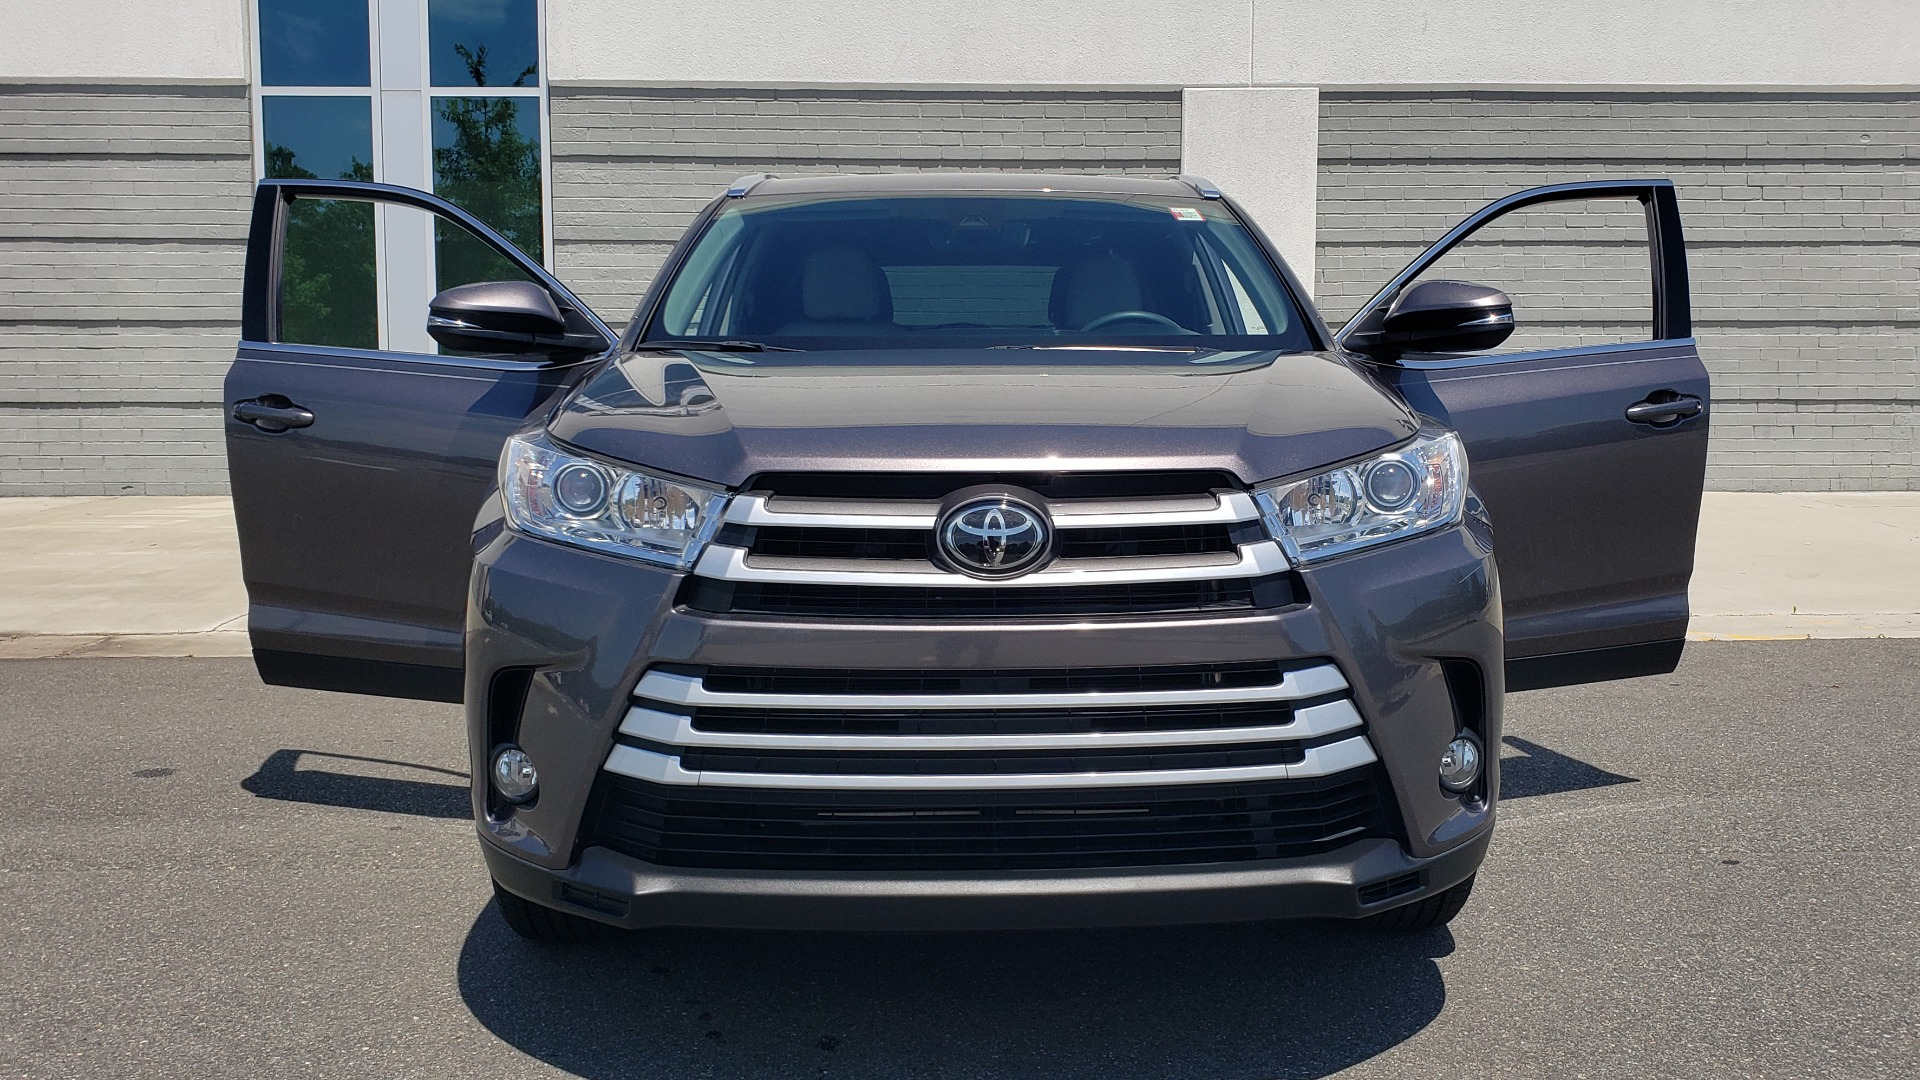 Used 2019 Toyota HIGHLANDER XLE / 3.5L V6 / AWD / LEATHER / 8-SPD AUTO / 1-OWNER for sale $37,500 at Formula Imports in Charlotte NC 28227 20